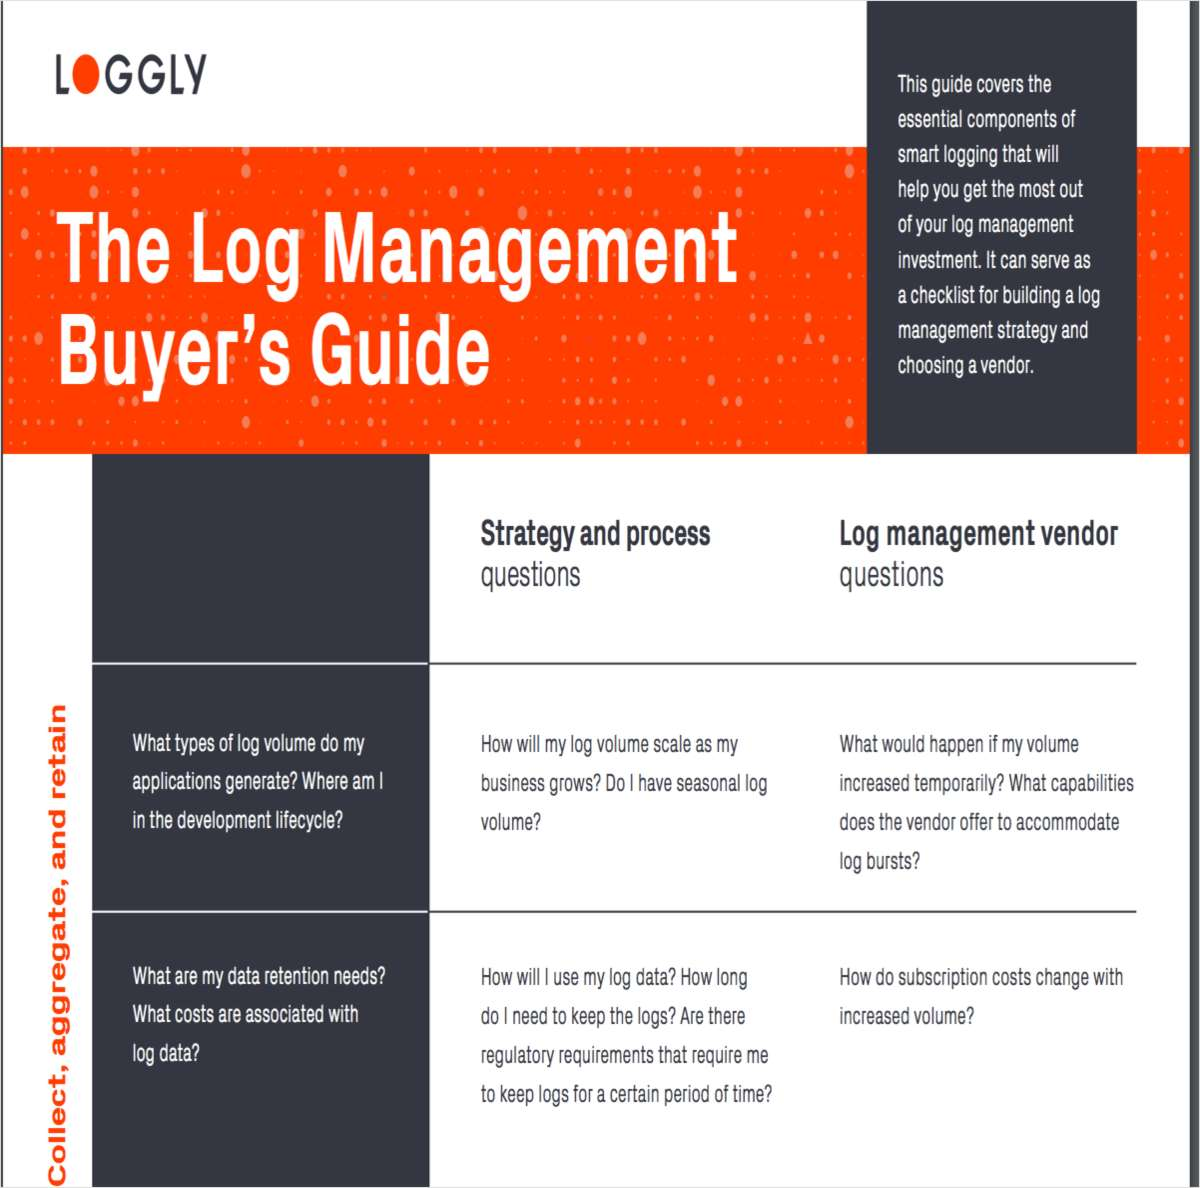 Buyers Guide To Log Management Software - What to ask (Download the guide and get a FREE product demo)